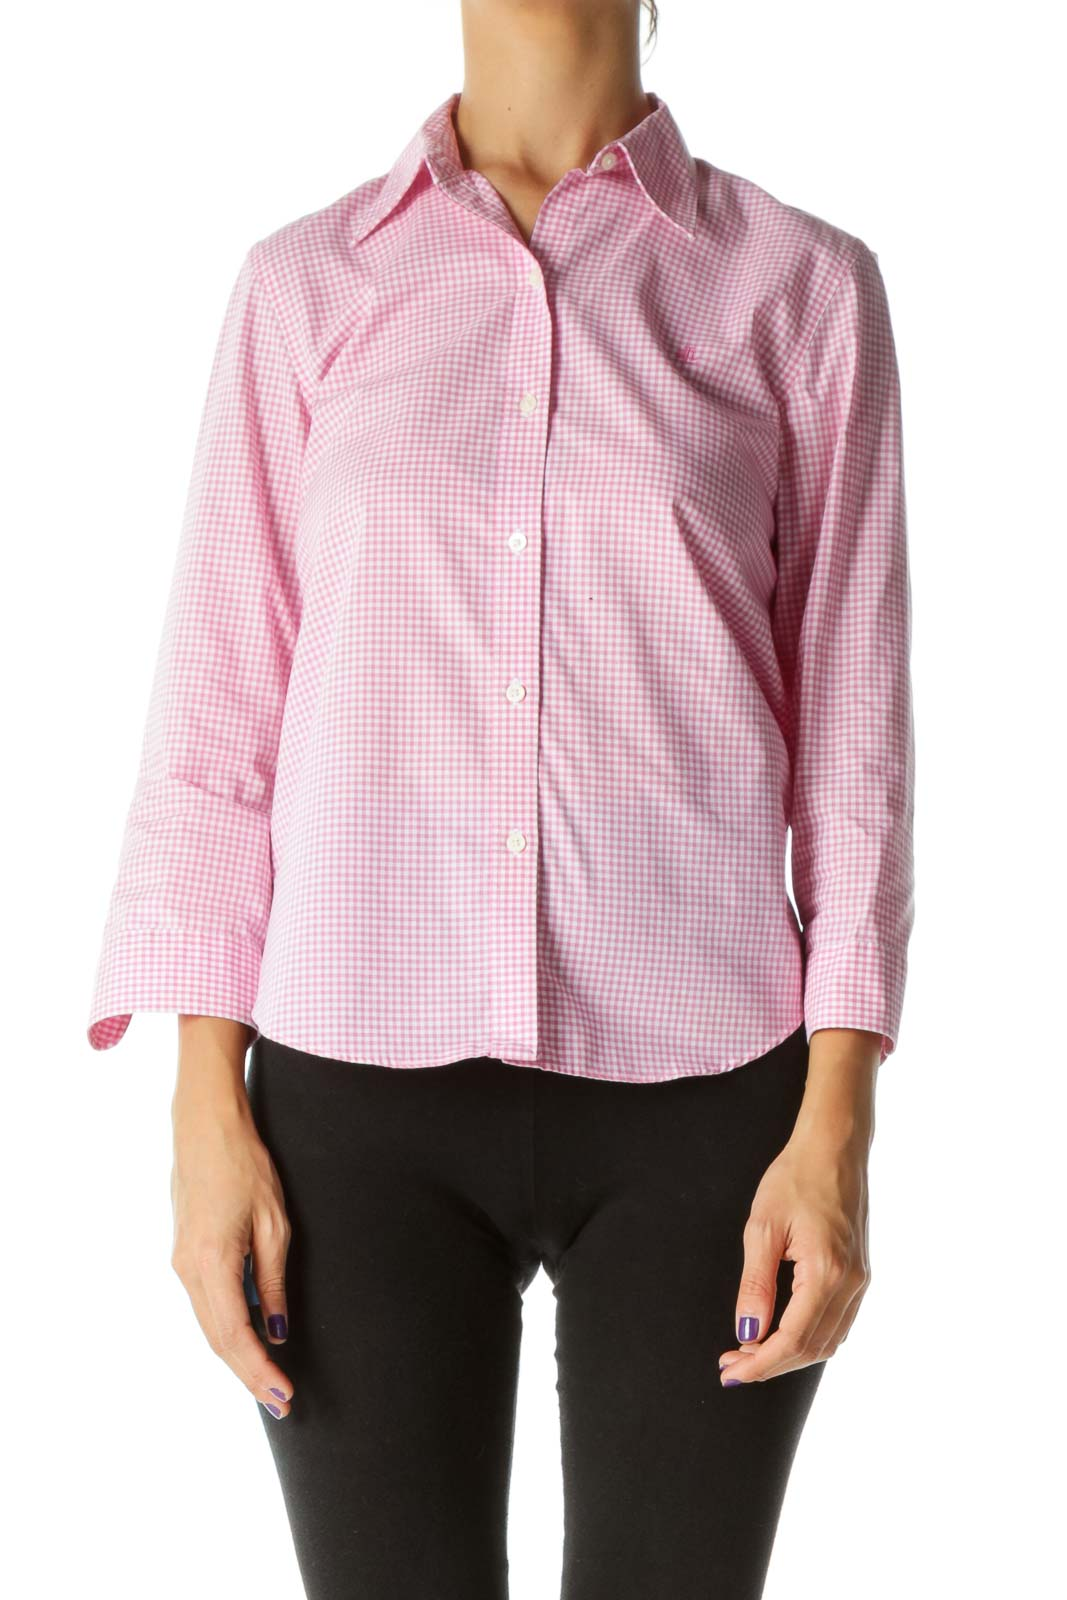 Pink White Small Gingham 100% Cotton Buttoned Shirt